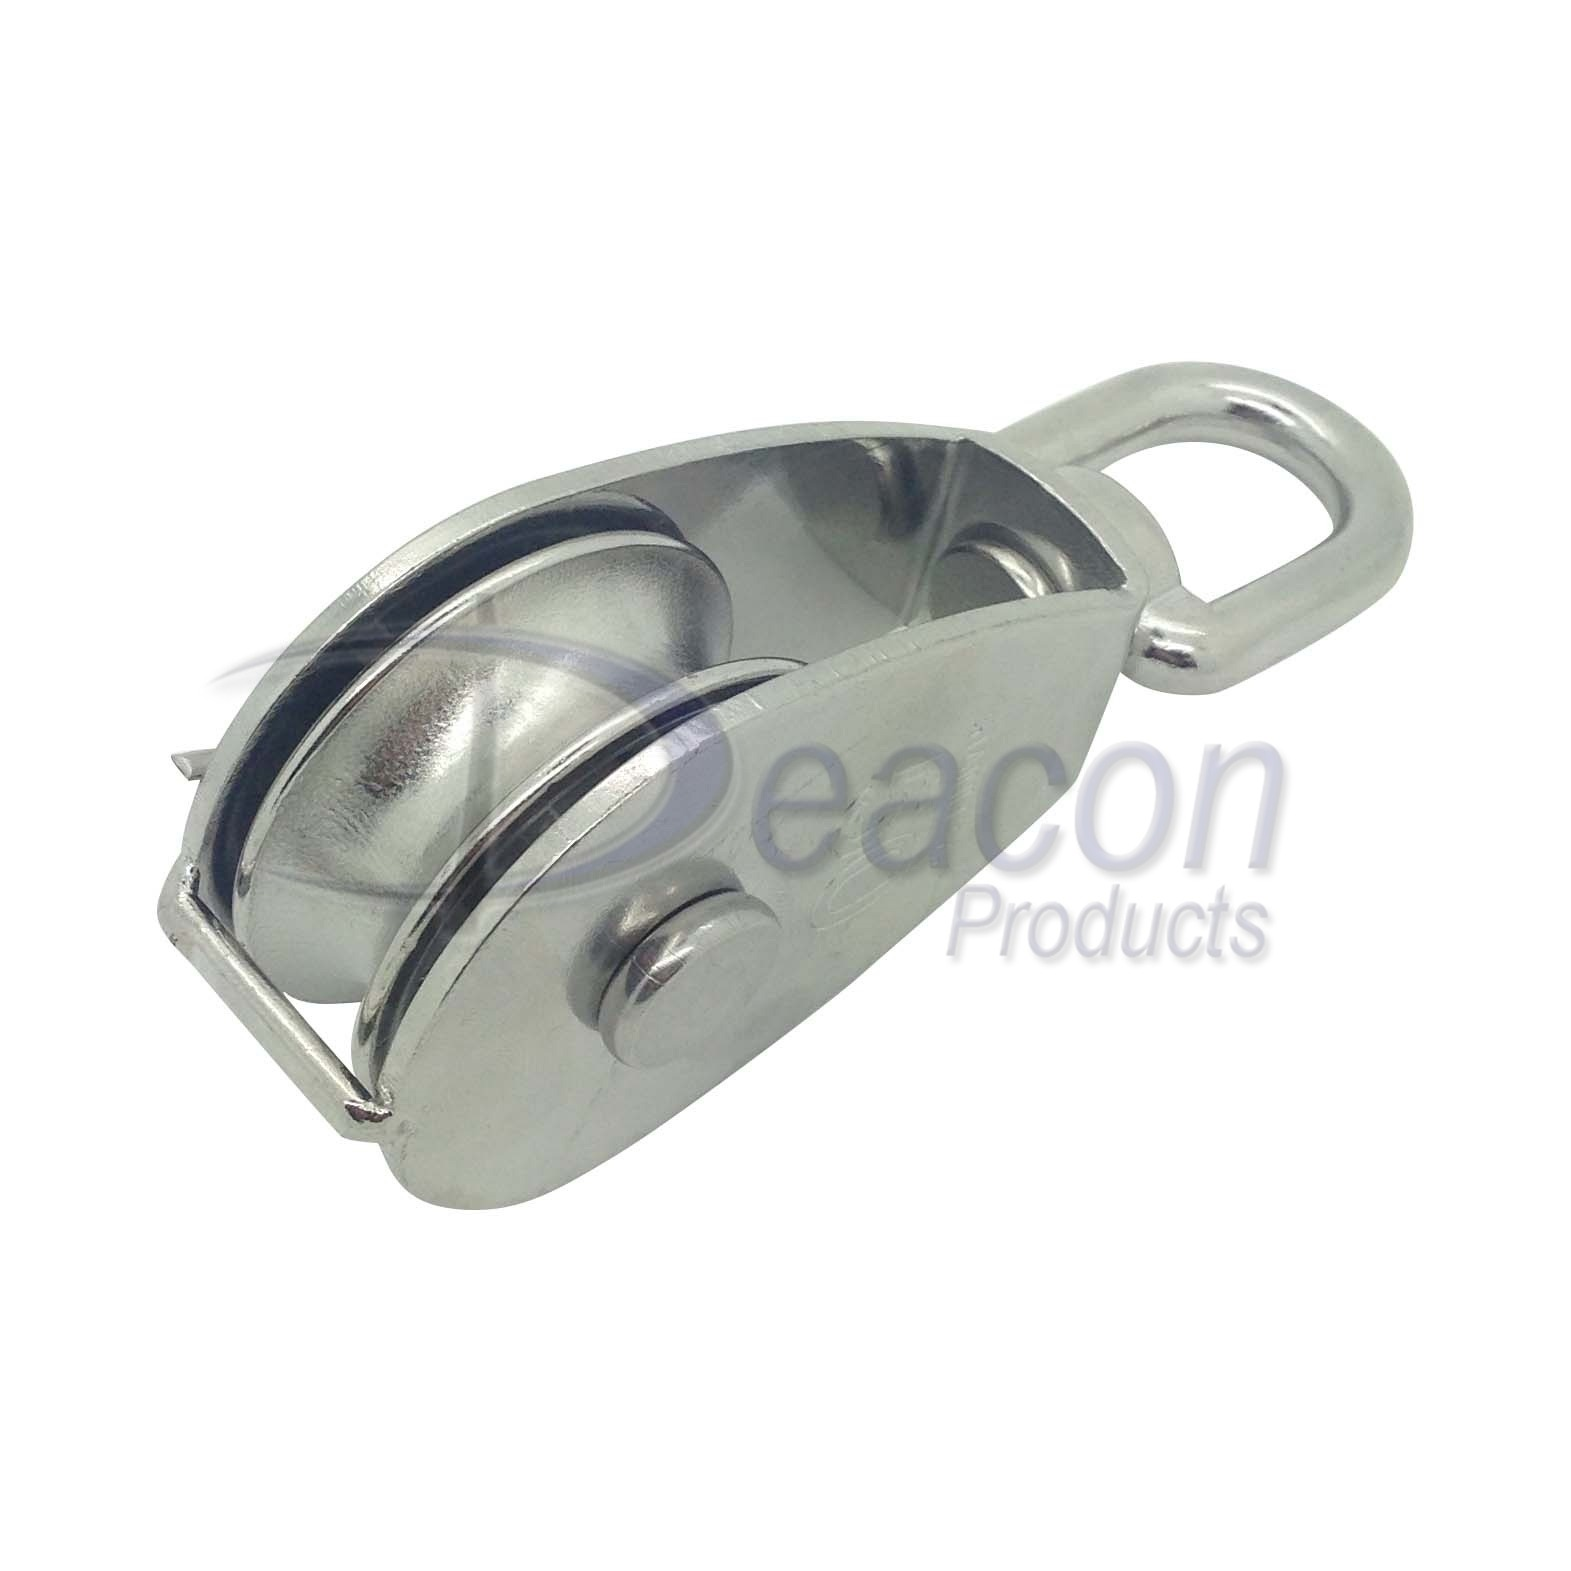 stainless-steel-swivel-eye-pulley-block